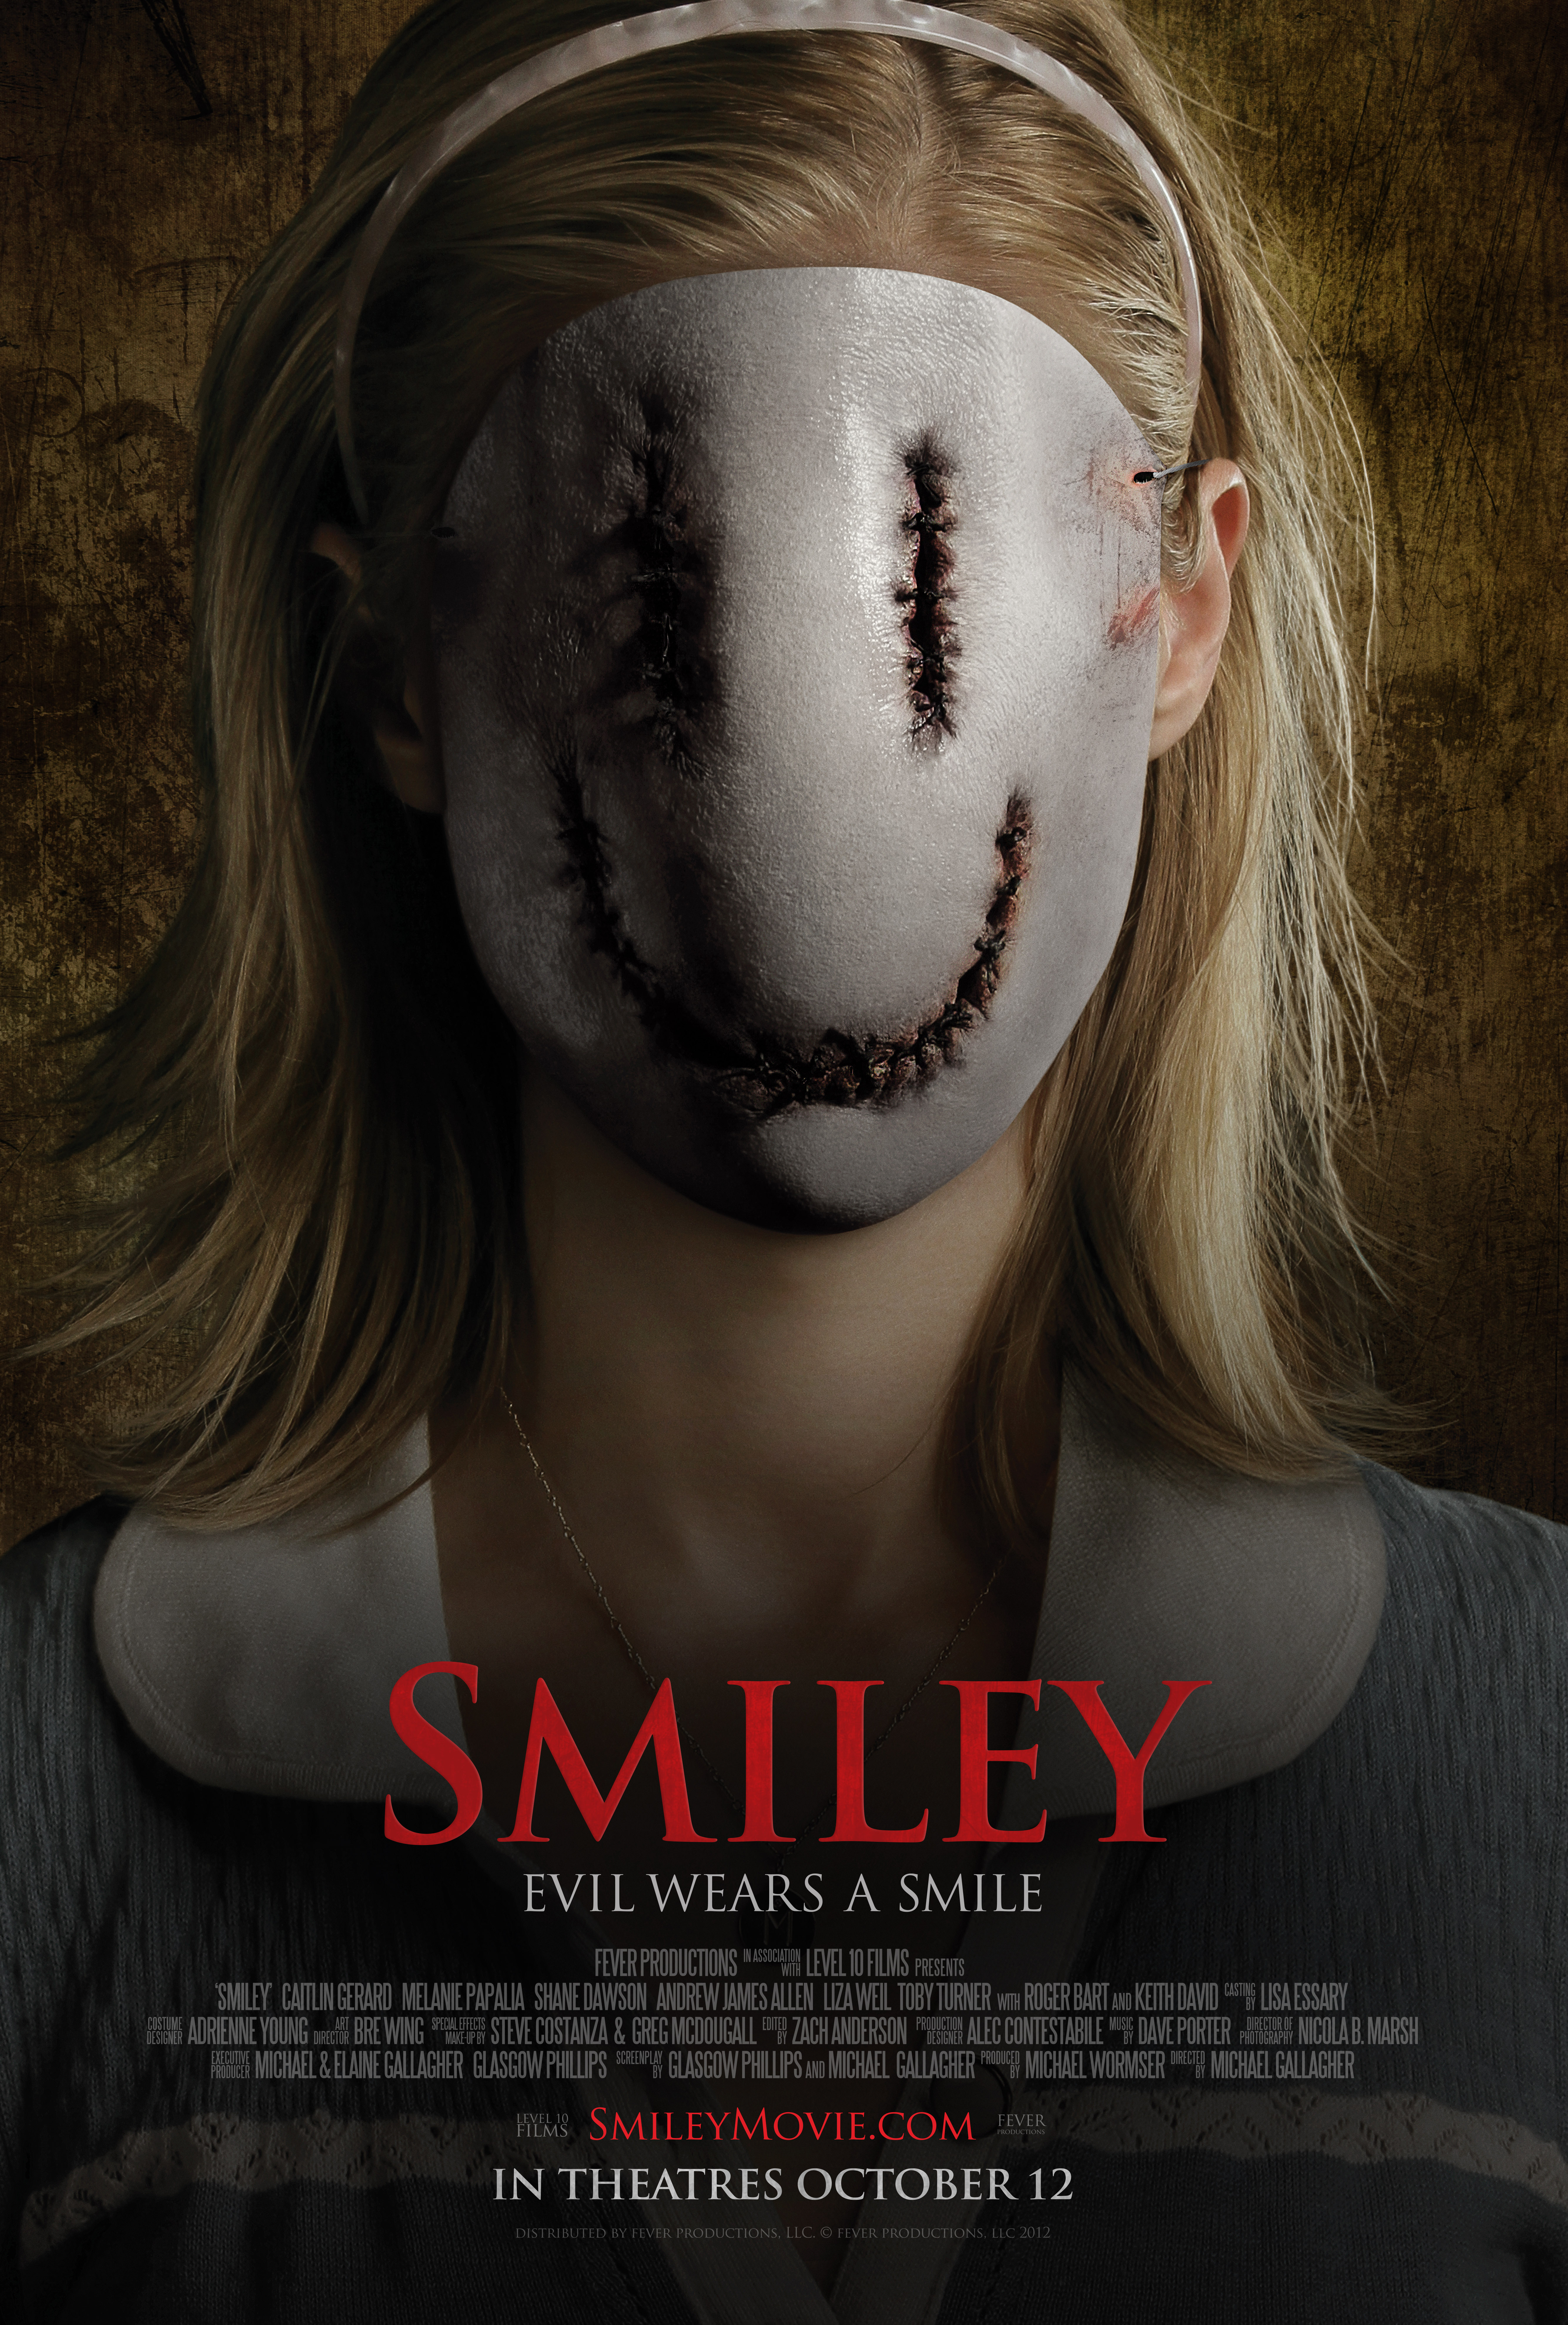 new release movies: Watch Smiley Now and get FULL MOVIE